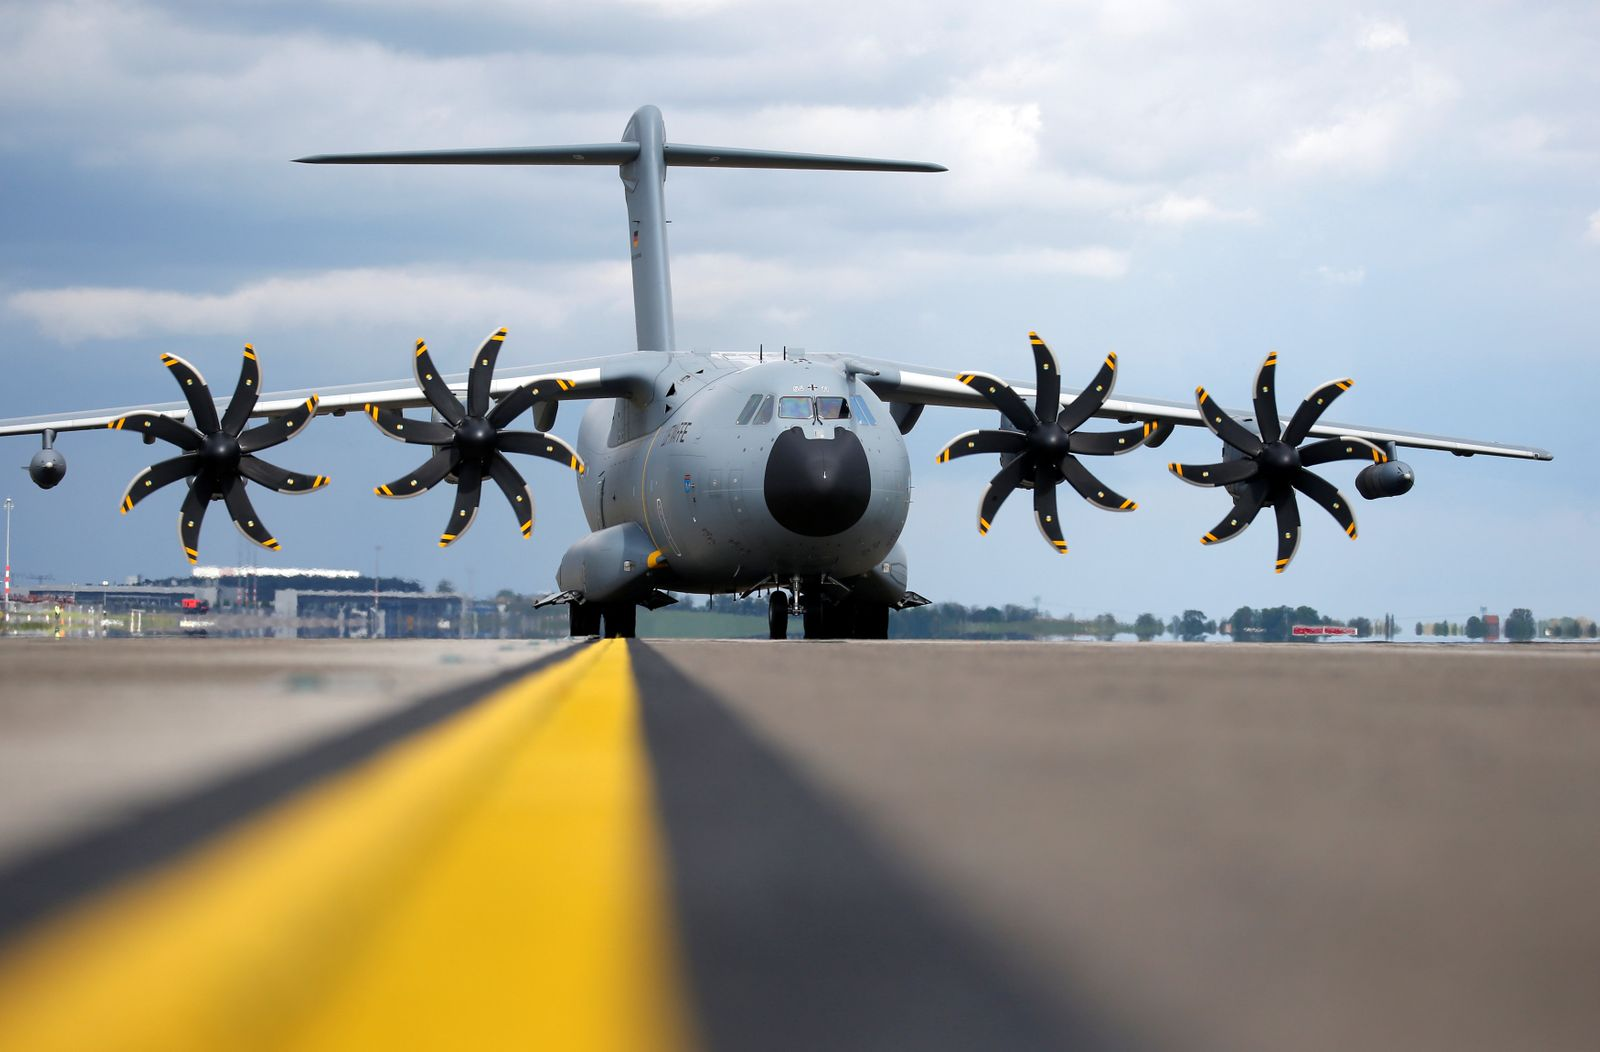 German Defense Minister Ursula von der Leyen and French Minister of the Armed Forces Florence Parly arrive in Airbus A-400 M to visit the ILA Air Show in Berlin